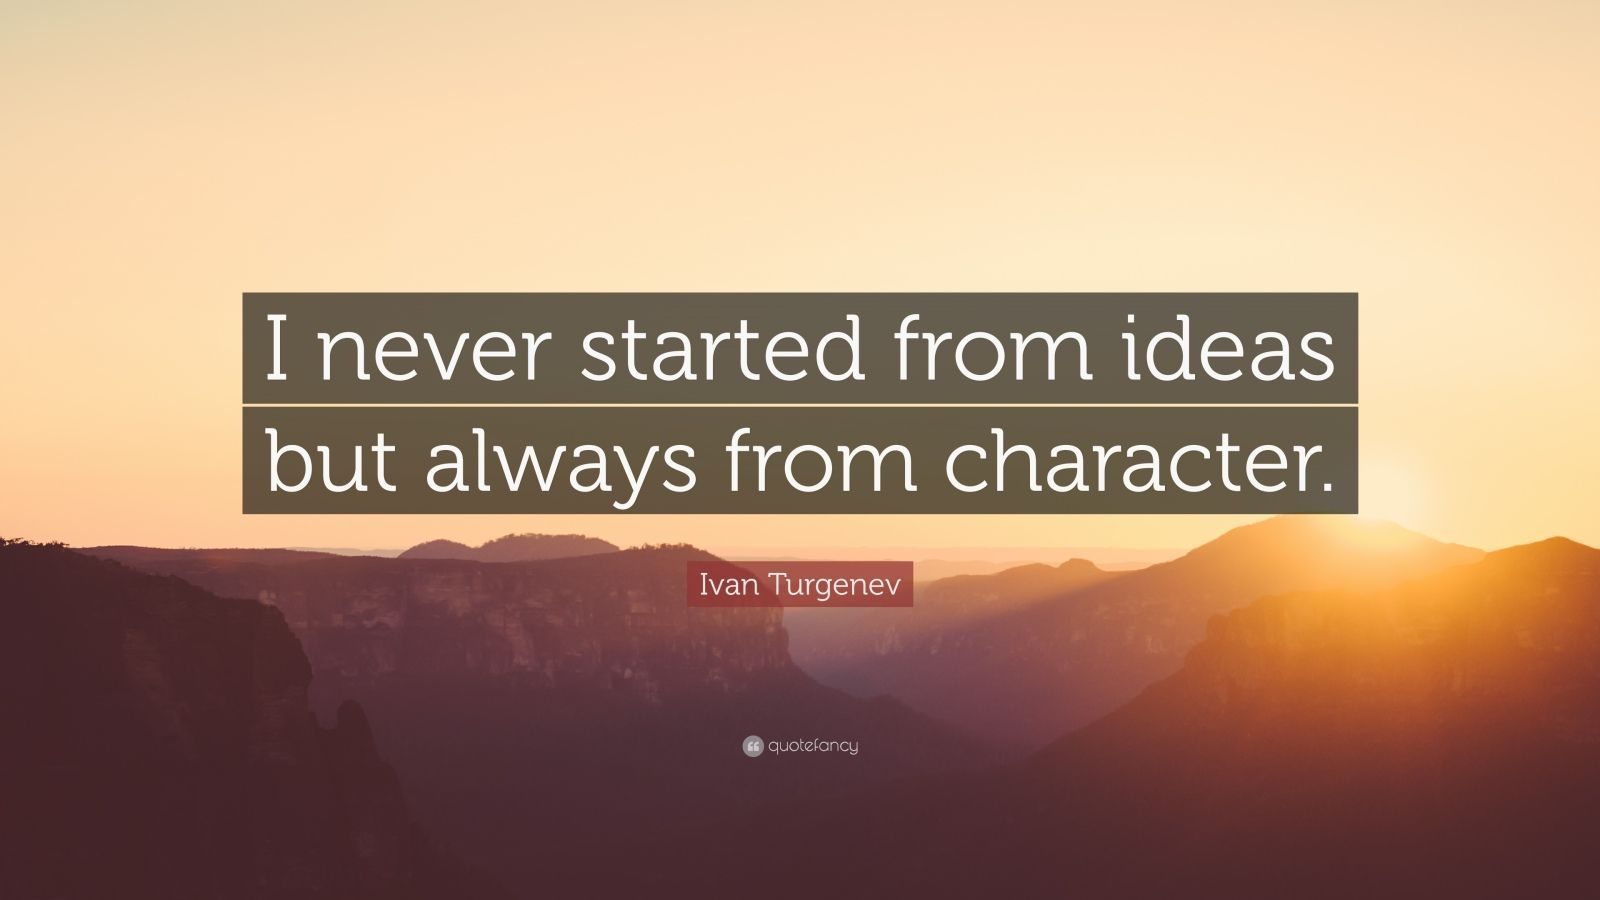 Ivan Turgenev The word tomorrow was invented for people indecisive - and for children I as a child calmed myself with this magic word